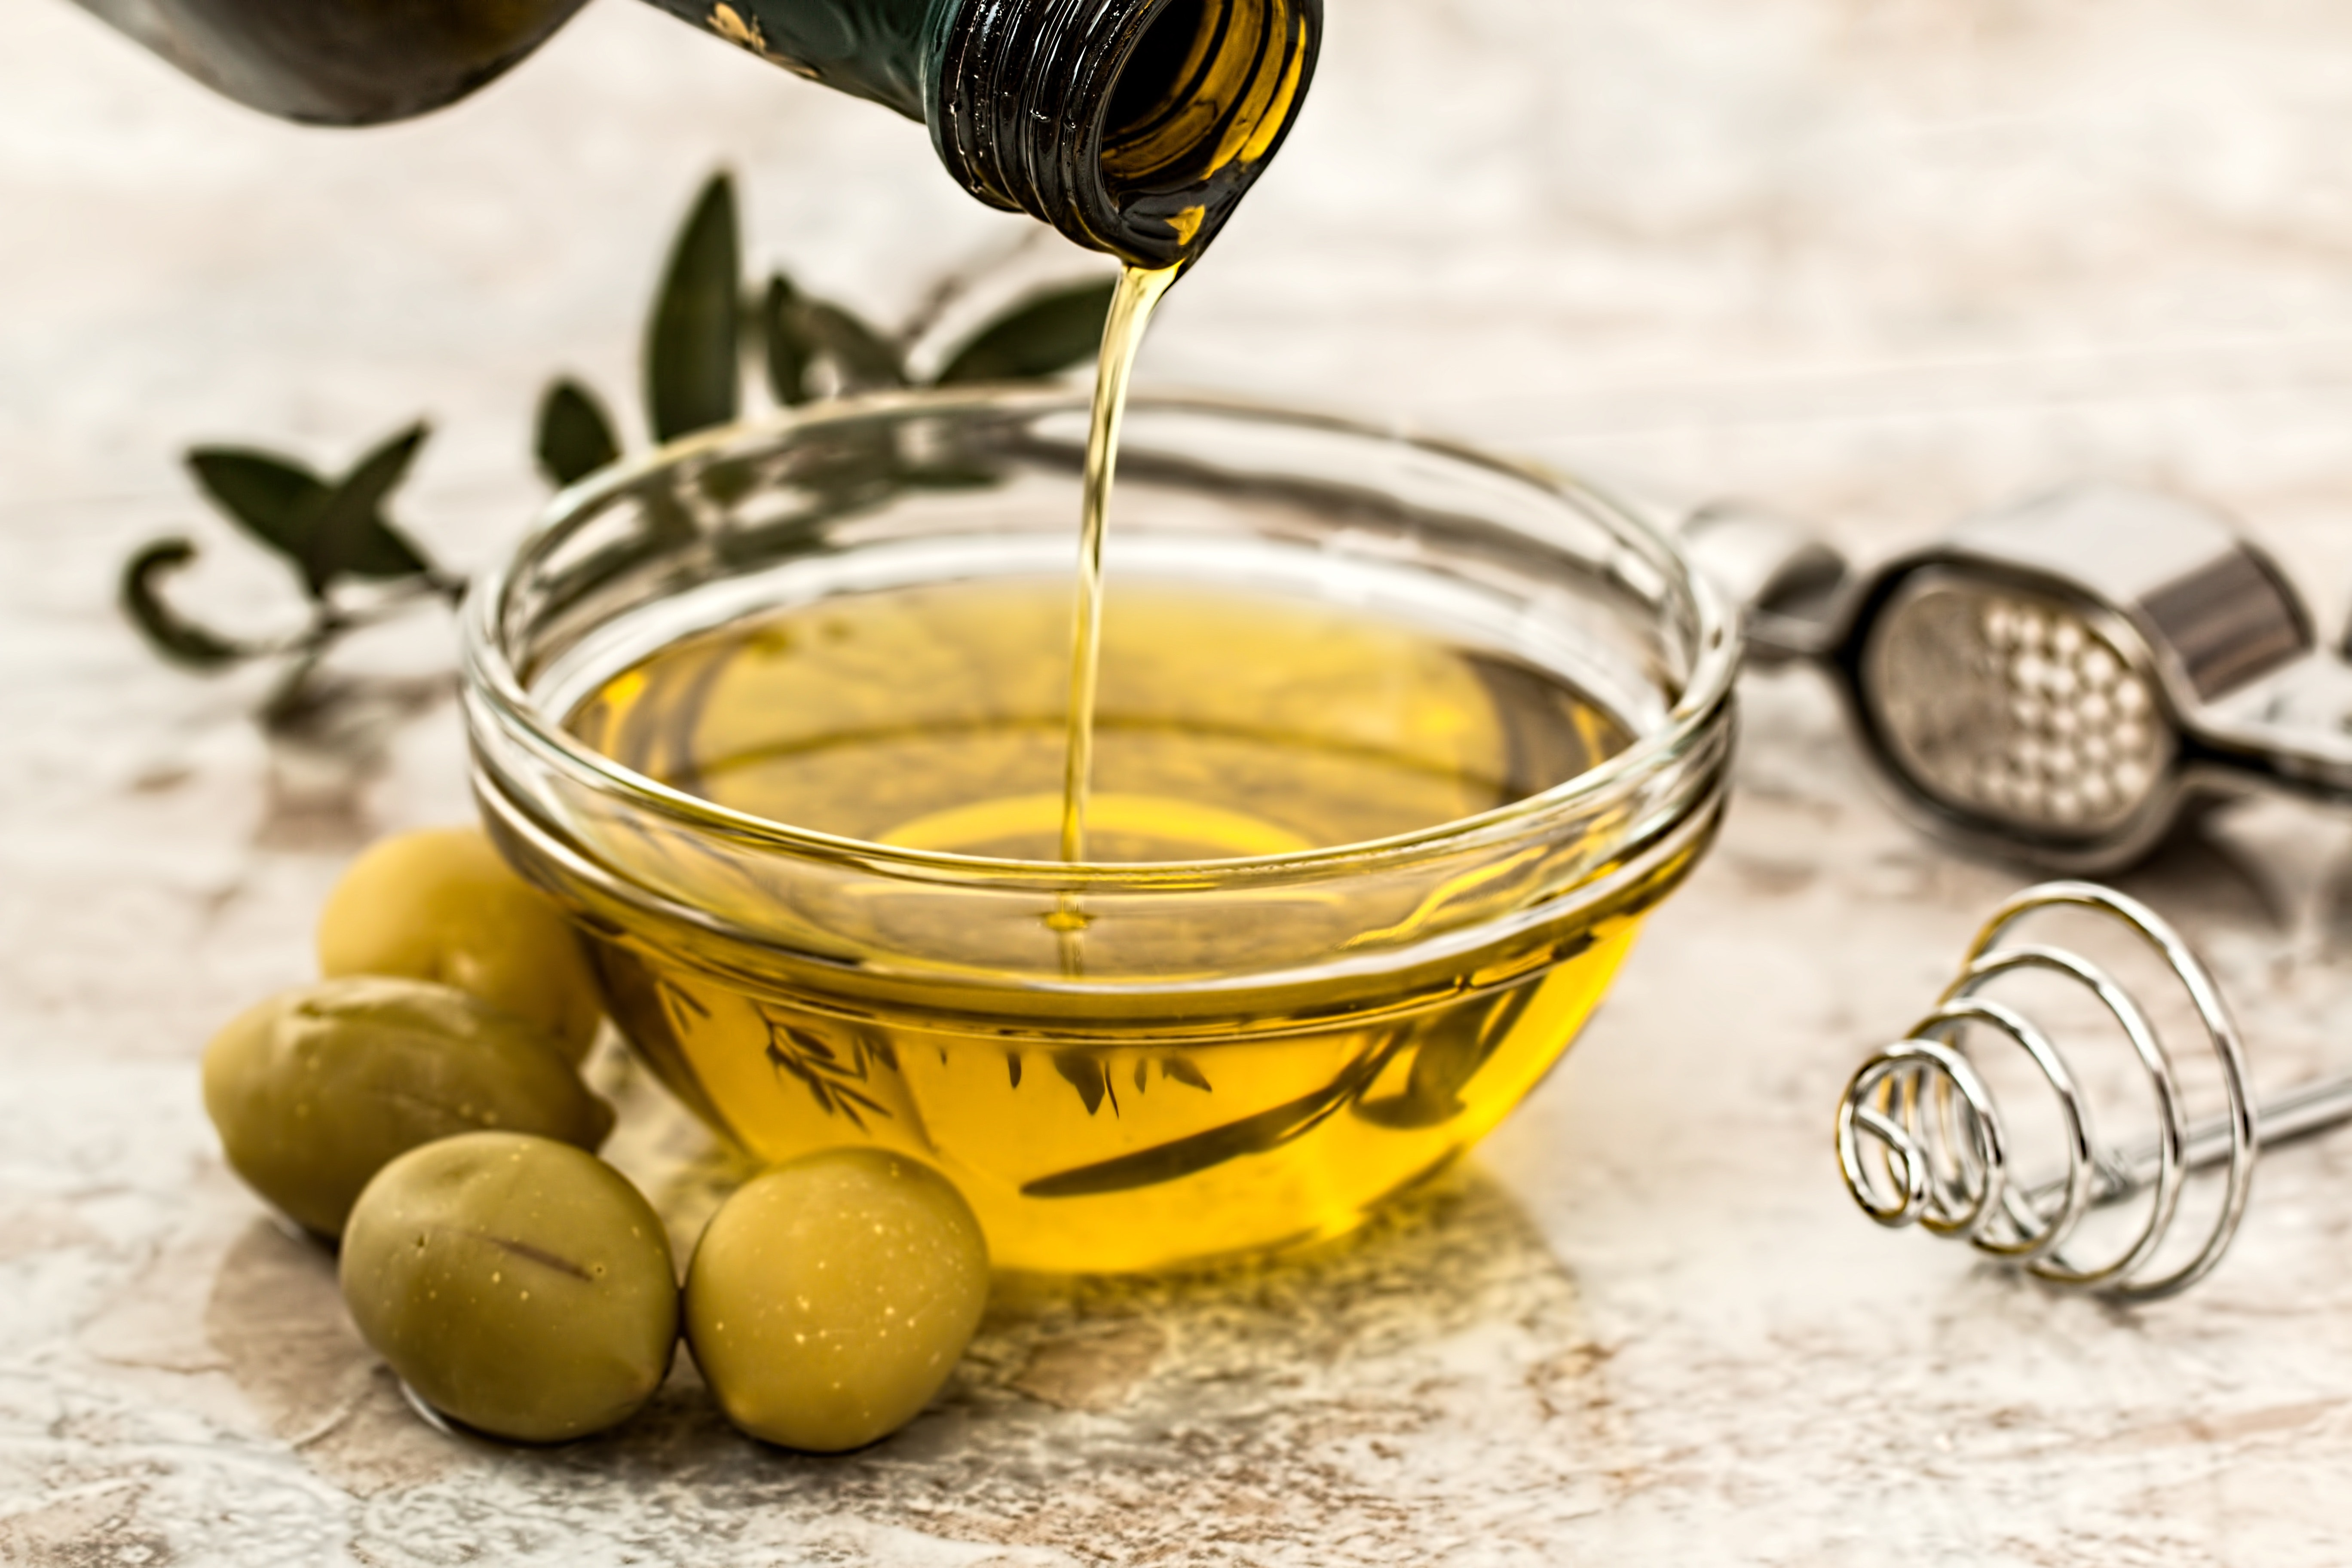 Quality of olive oil